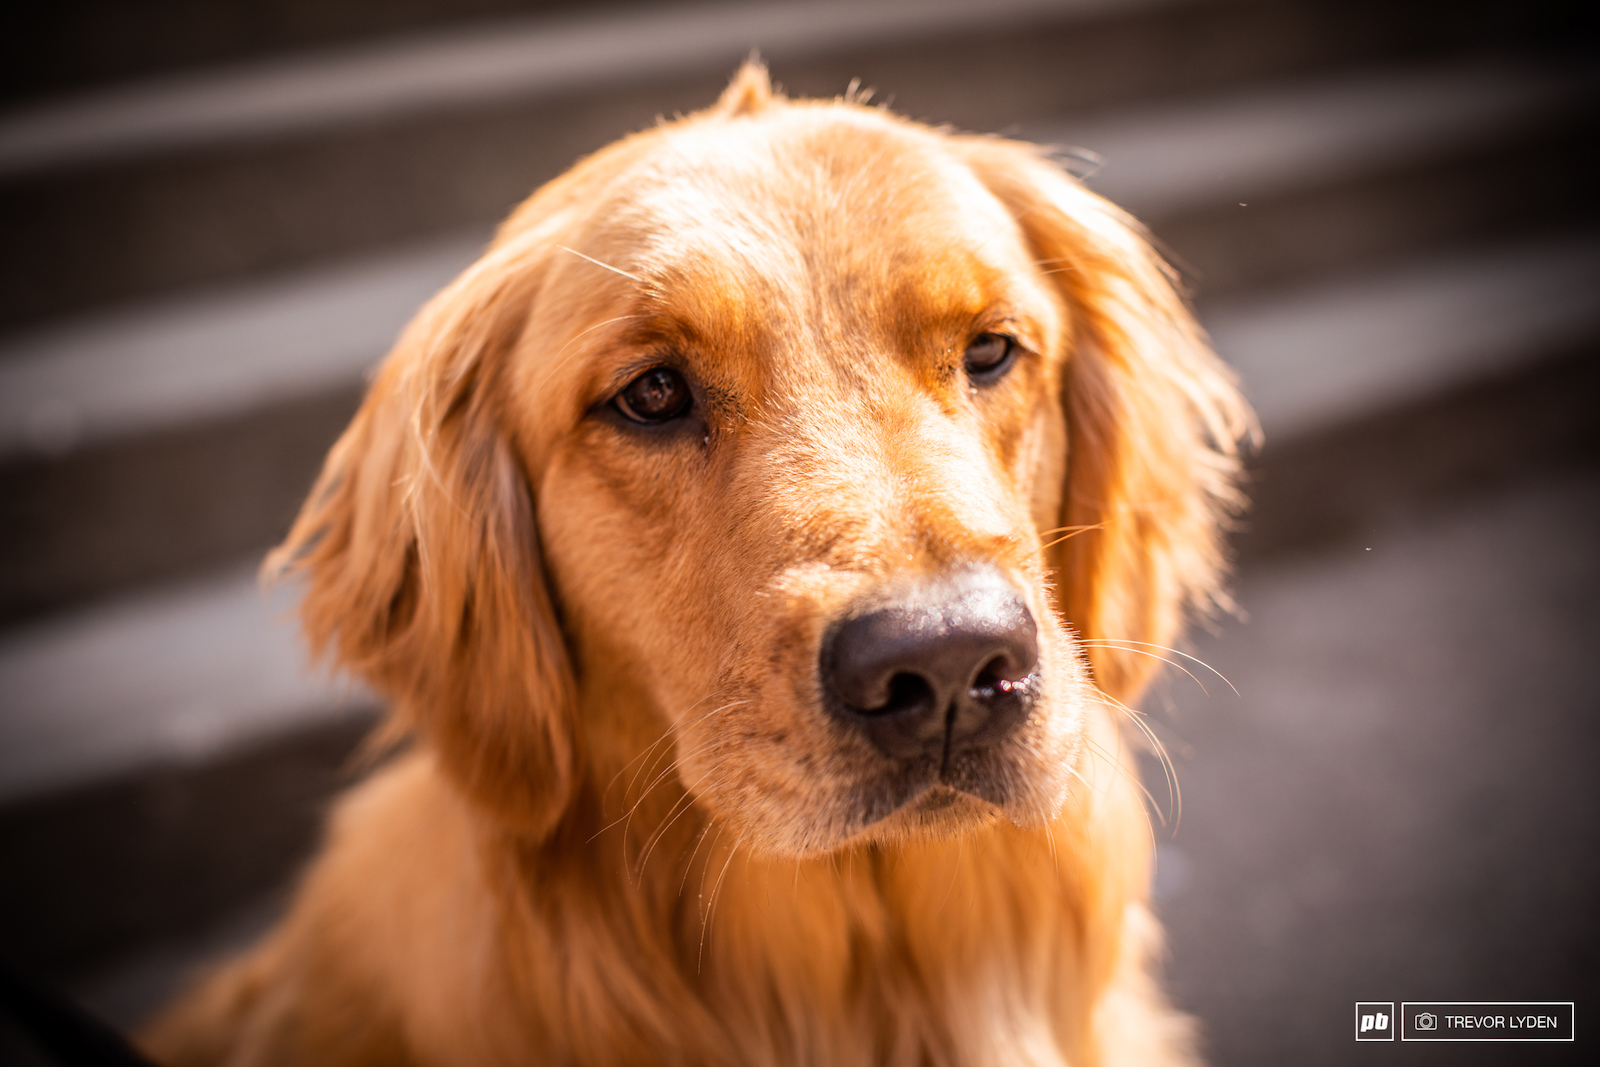 Name Mabel Breed Golden Retriever Age 2 years Hometown Portland Oregon Fun Fact Mabel has experimented with many different hair styles but after much deliberation has settled on the punk rock mohawk look.